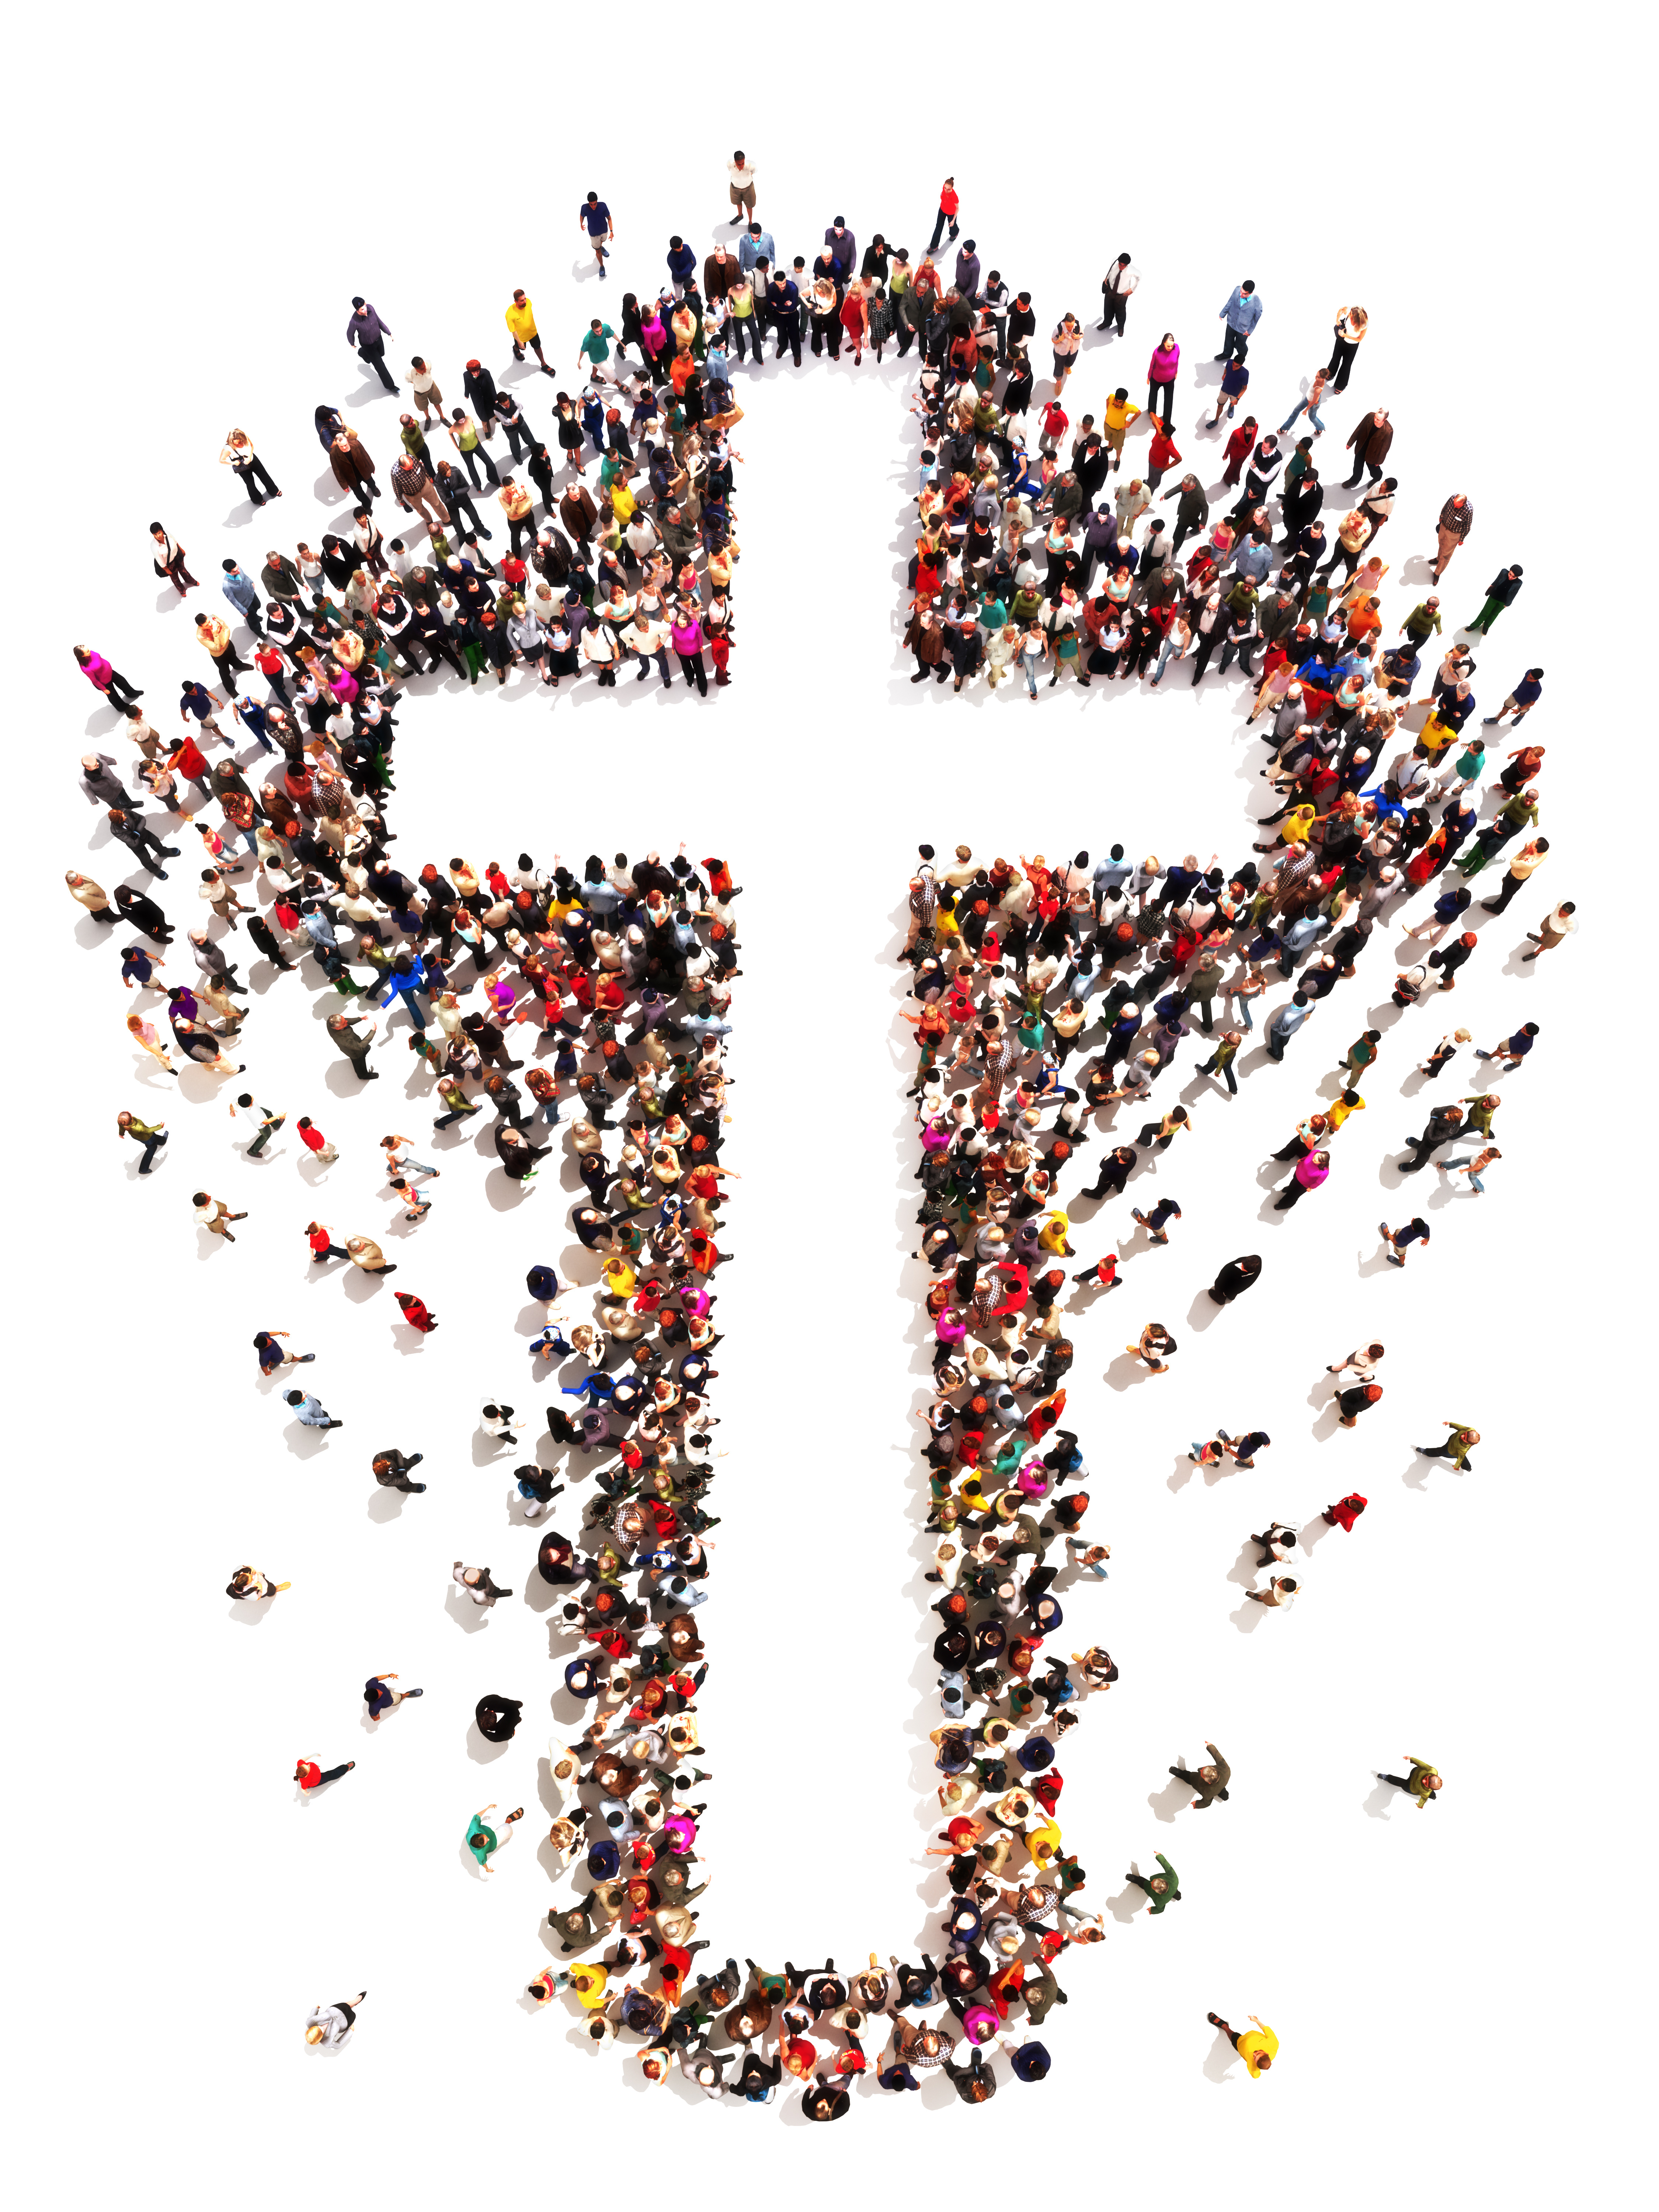 People finding Christianity, religion and faith